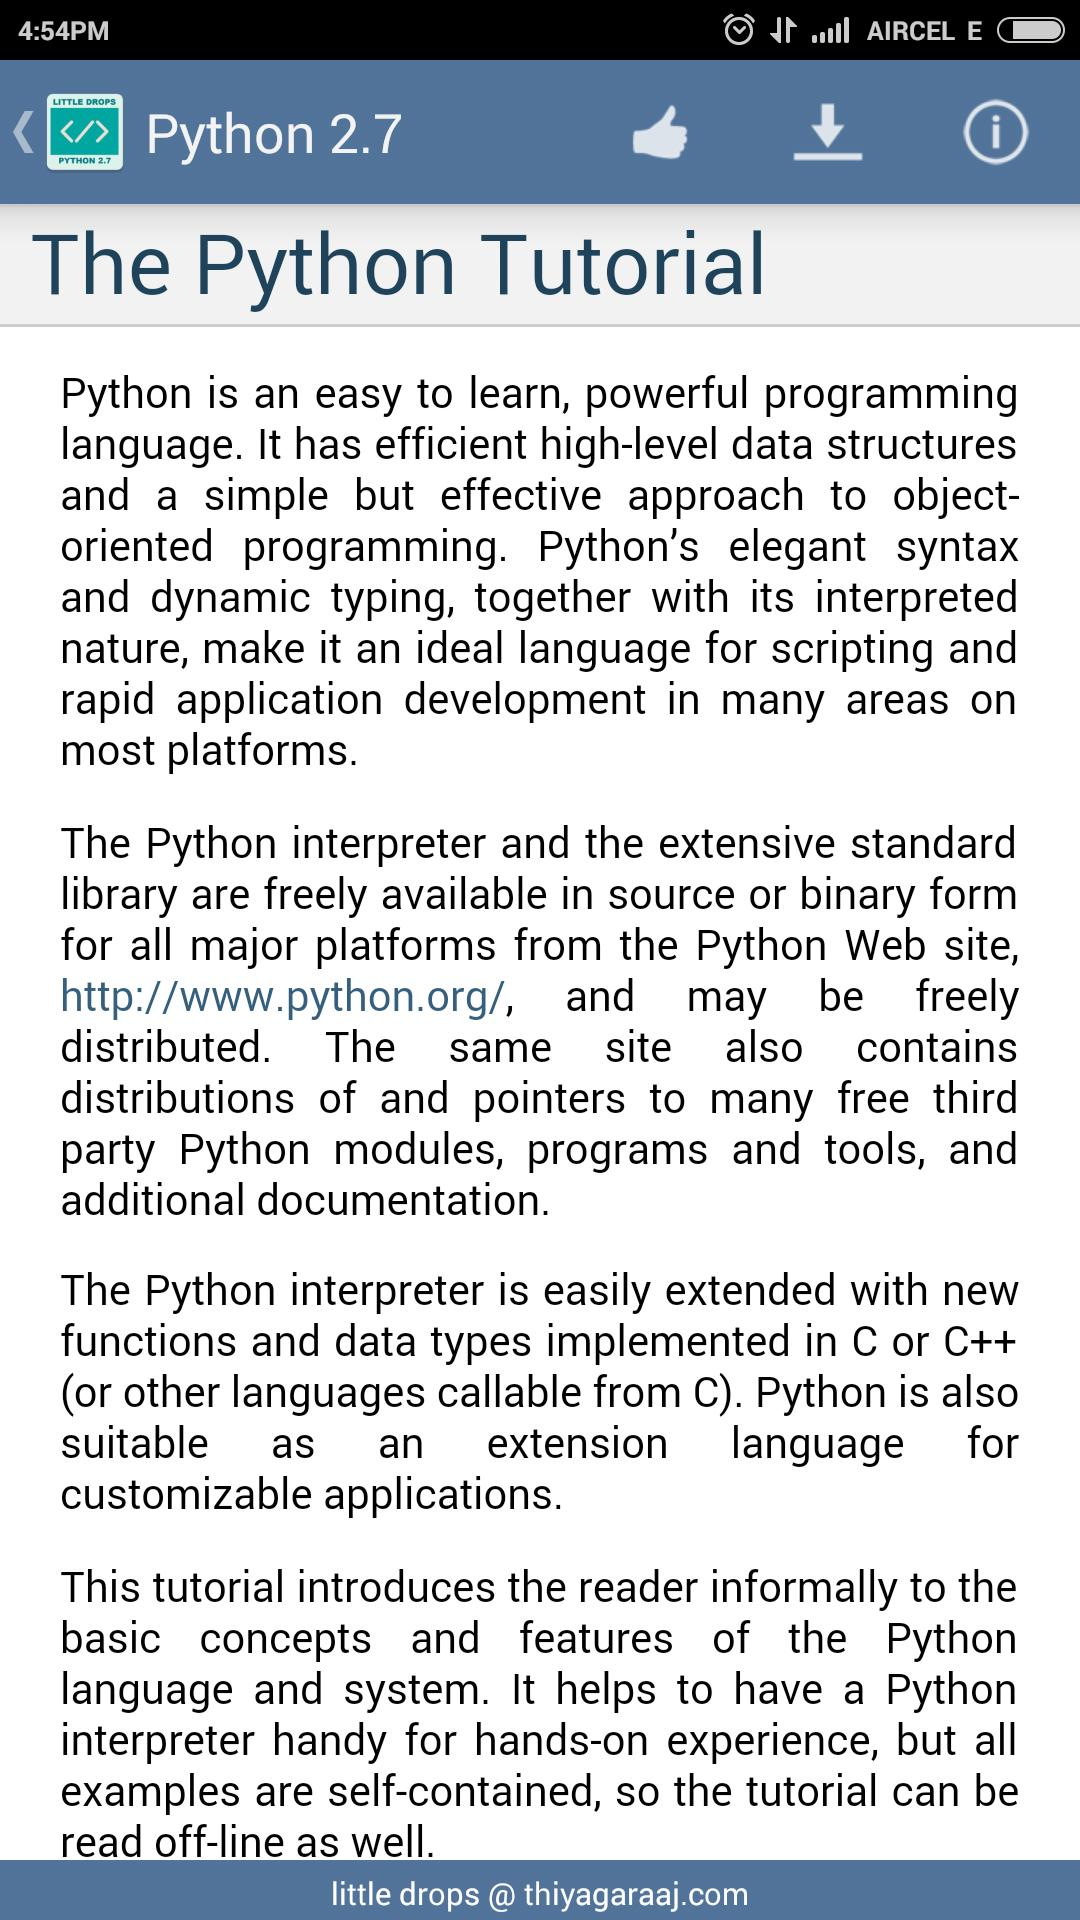 Python Documentation 2 7 for Android - APK Download